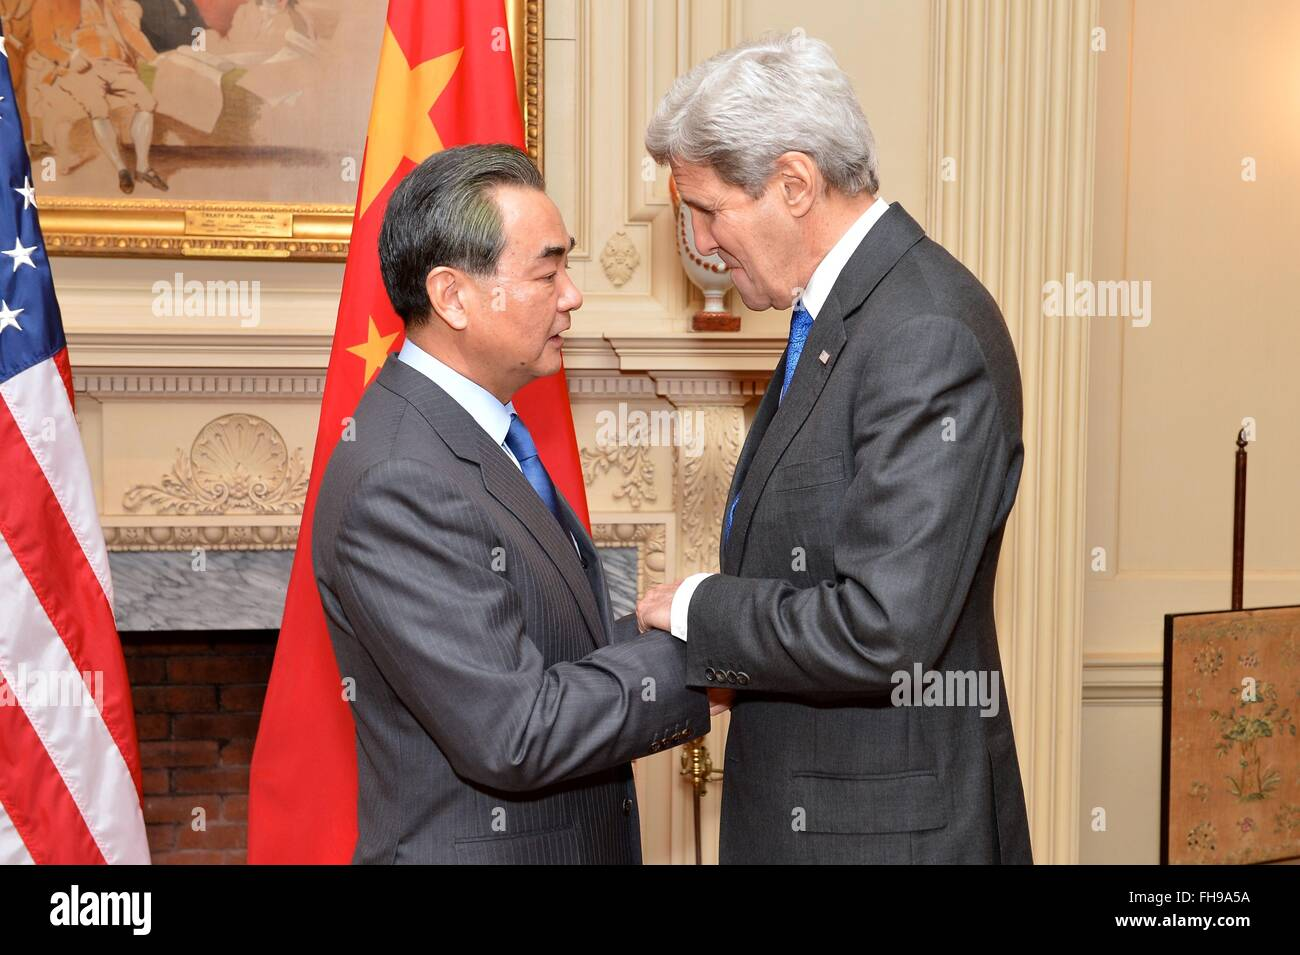 U.S. Secretary of State John Kerry greets Chinese Foreign Minister Wang Yi before their bilateral meeting at the - Stock Image